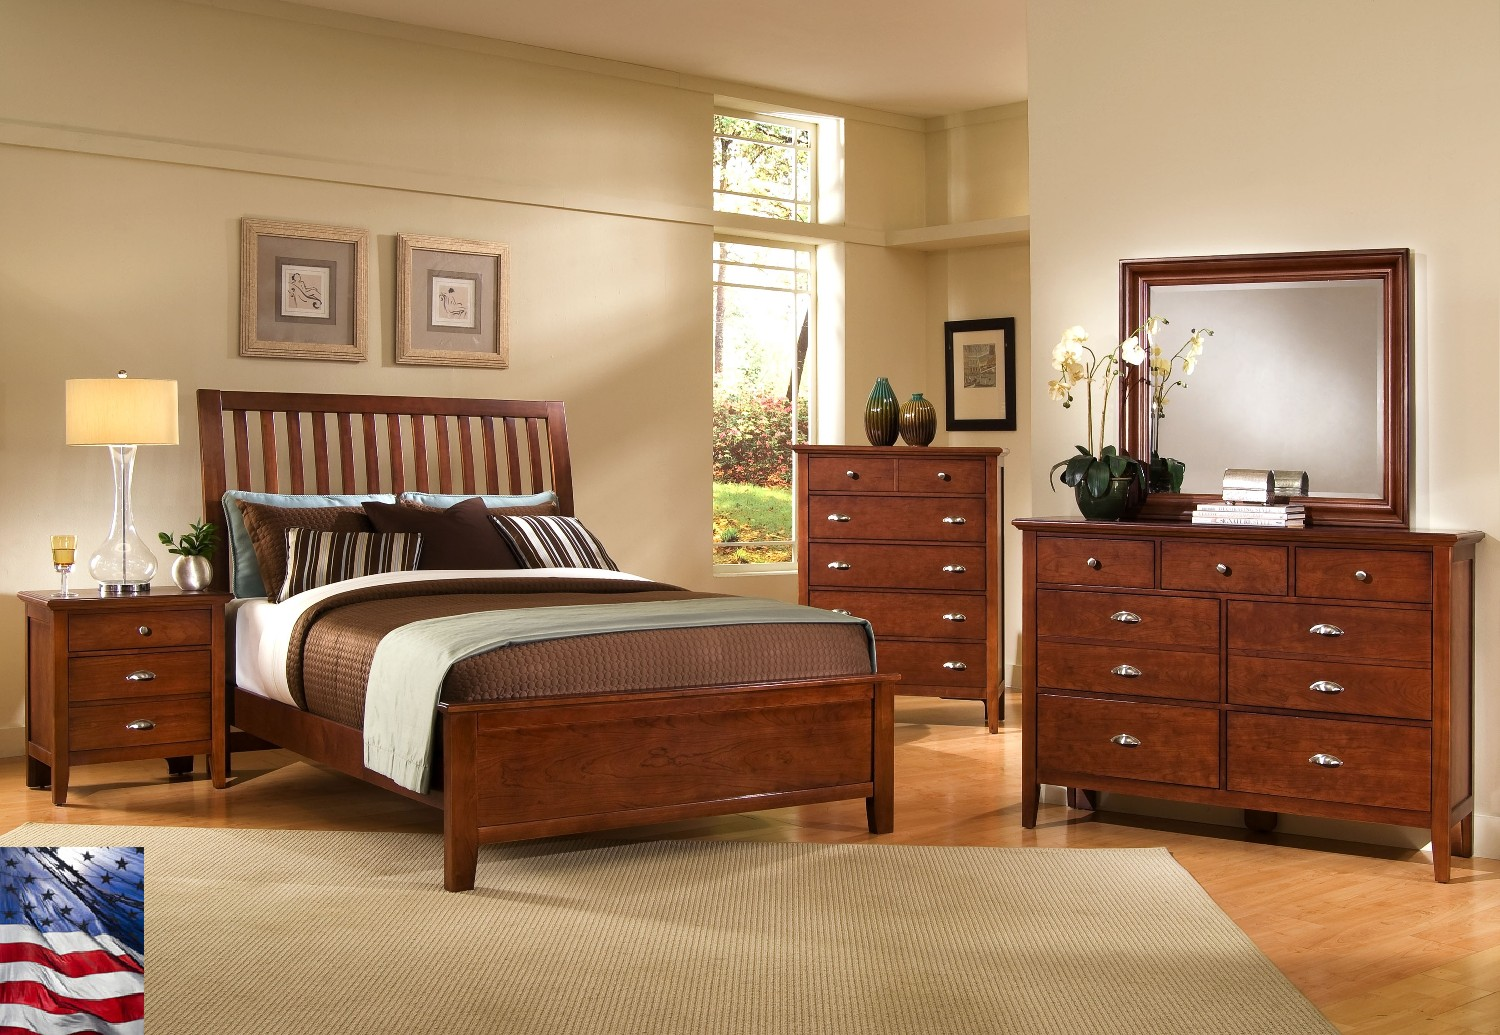 brown bedroom furniture decorating ideas photo - 6